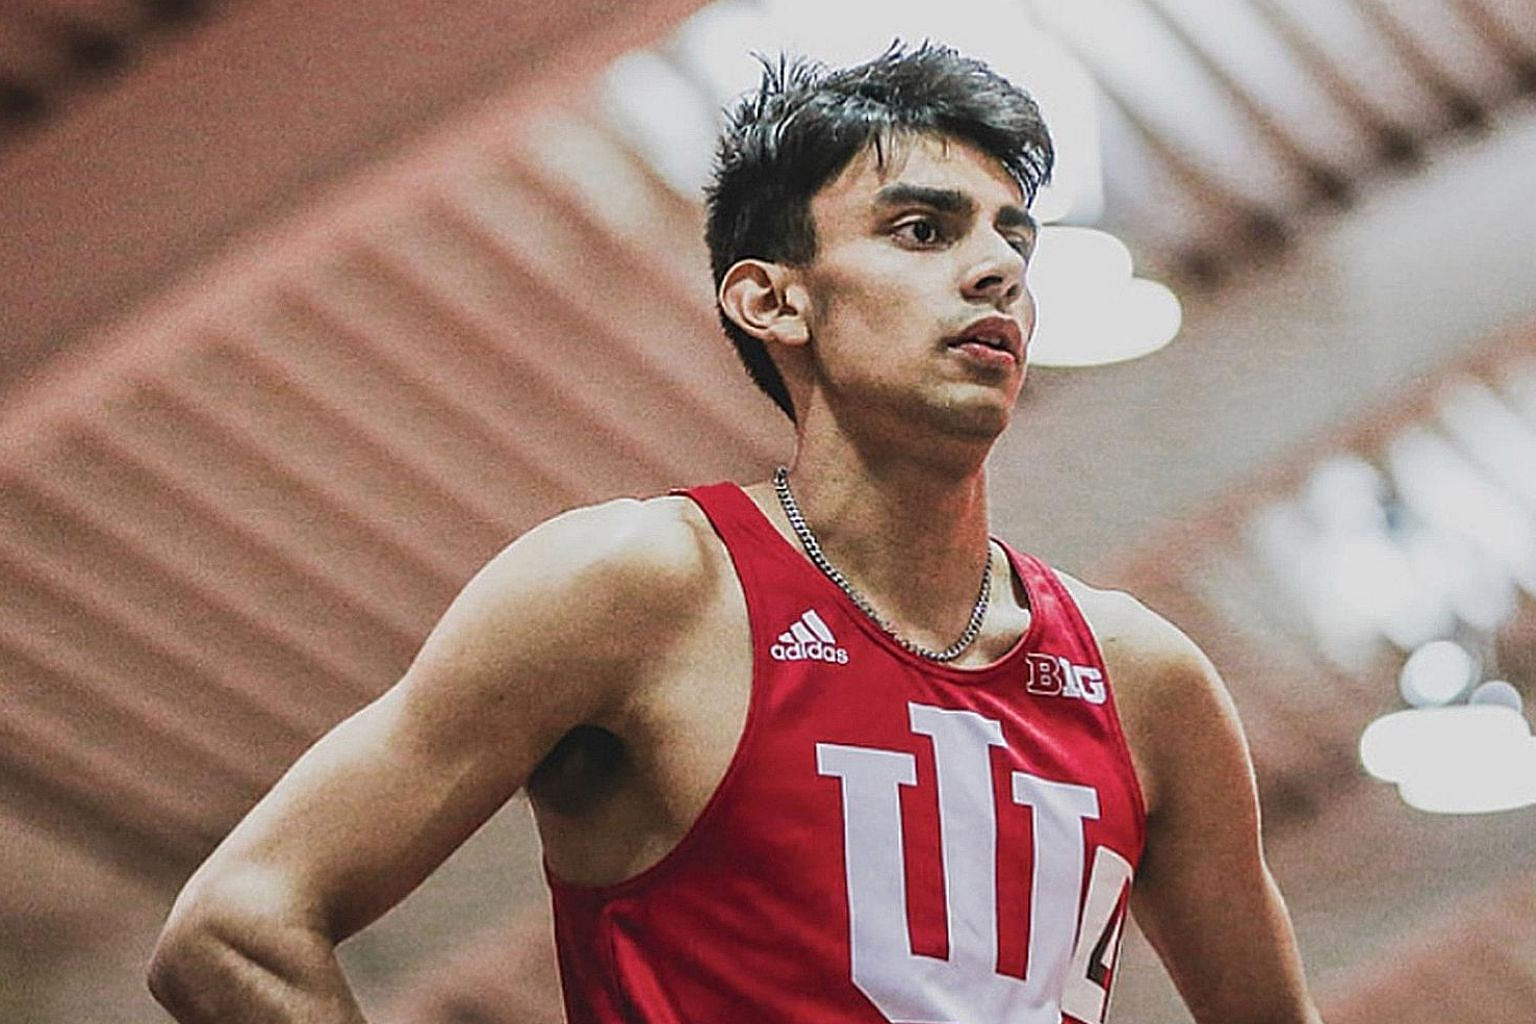 Singaporean sprinter Zubin Muncherji bettered his own national men's 400m record with a time of 47.02 seconds while competing on Saturday at the Big Ten Championships at Indiana University.